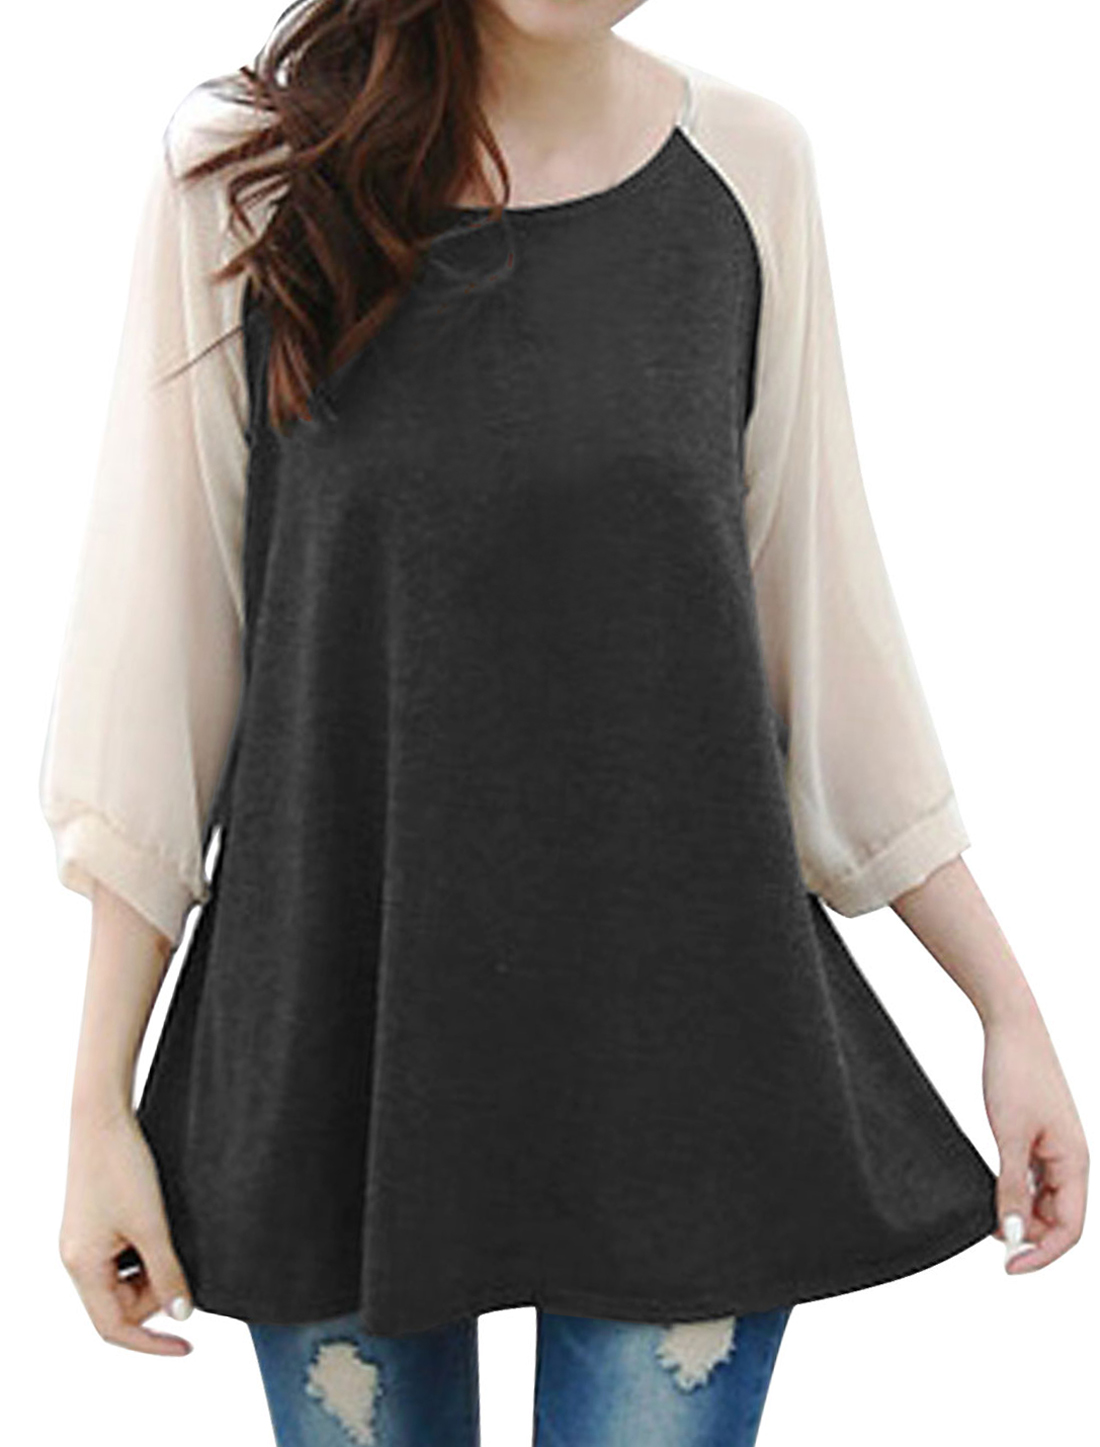 Lady Pullover Chiffon Panel Raglan Sleeve Top Dark Gray S